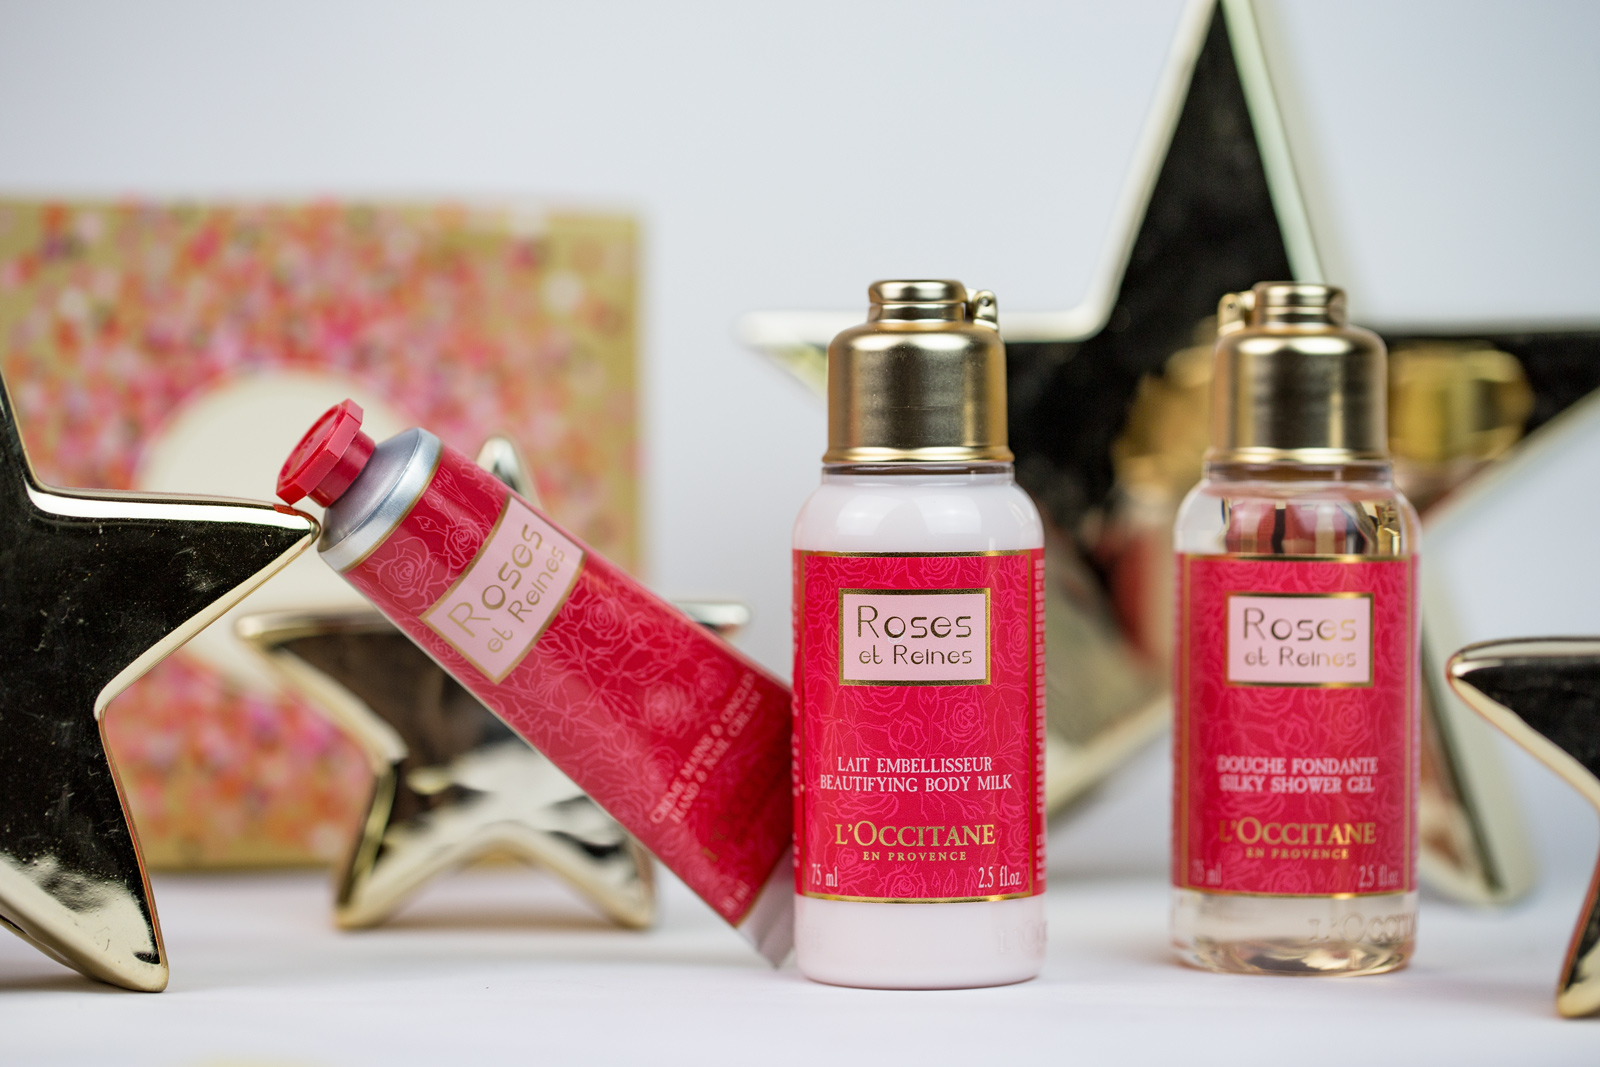 1600_beauty_gws_loccitane_2